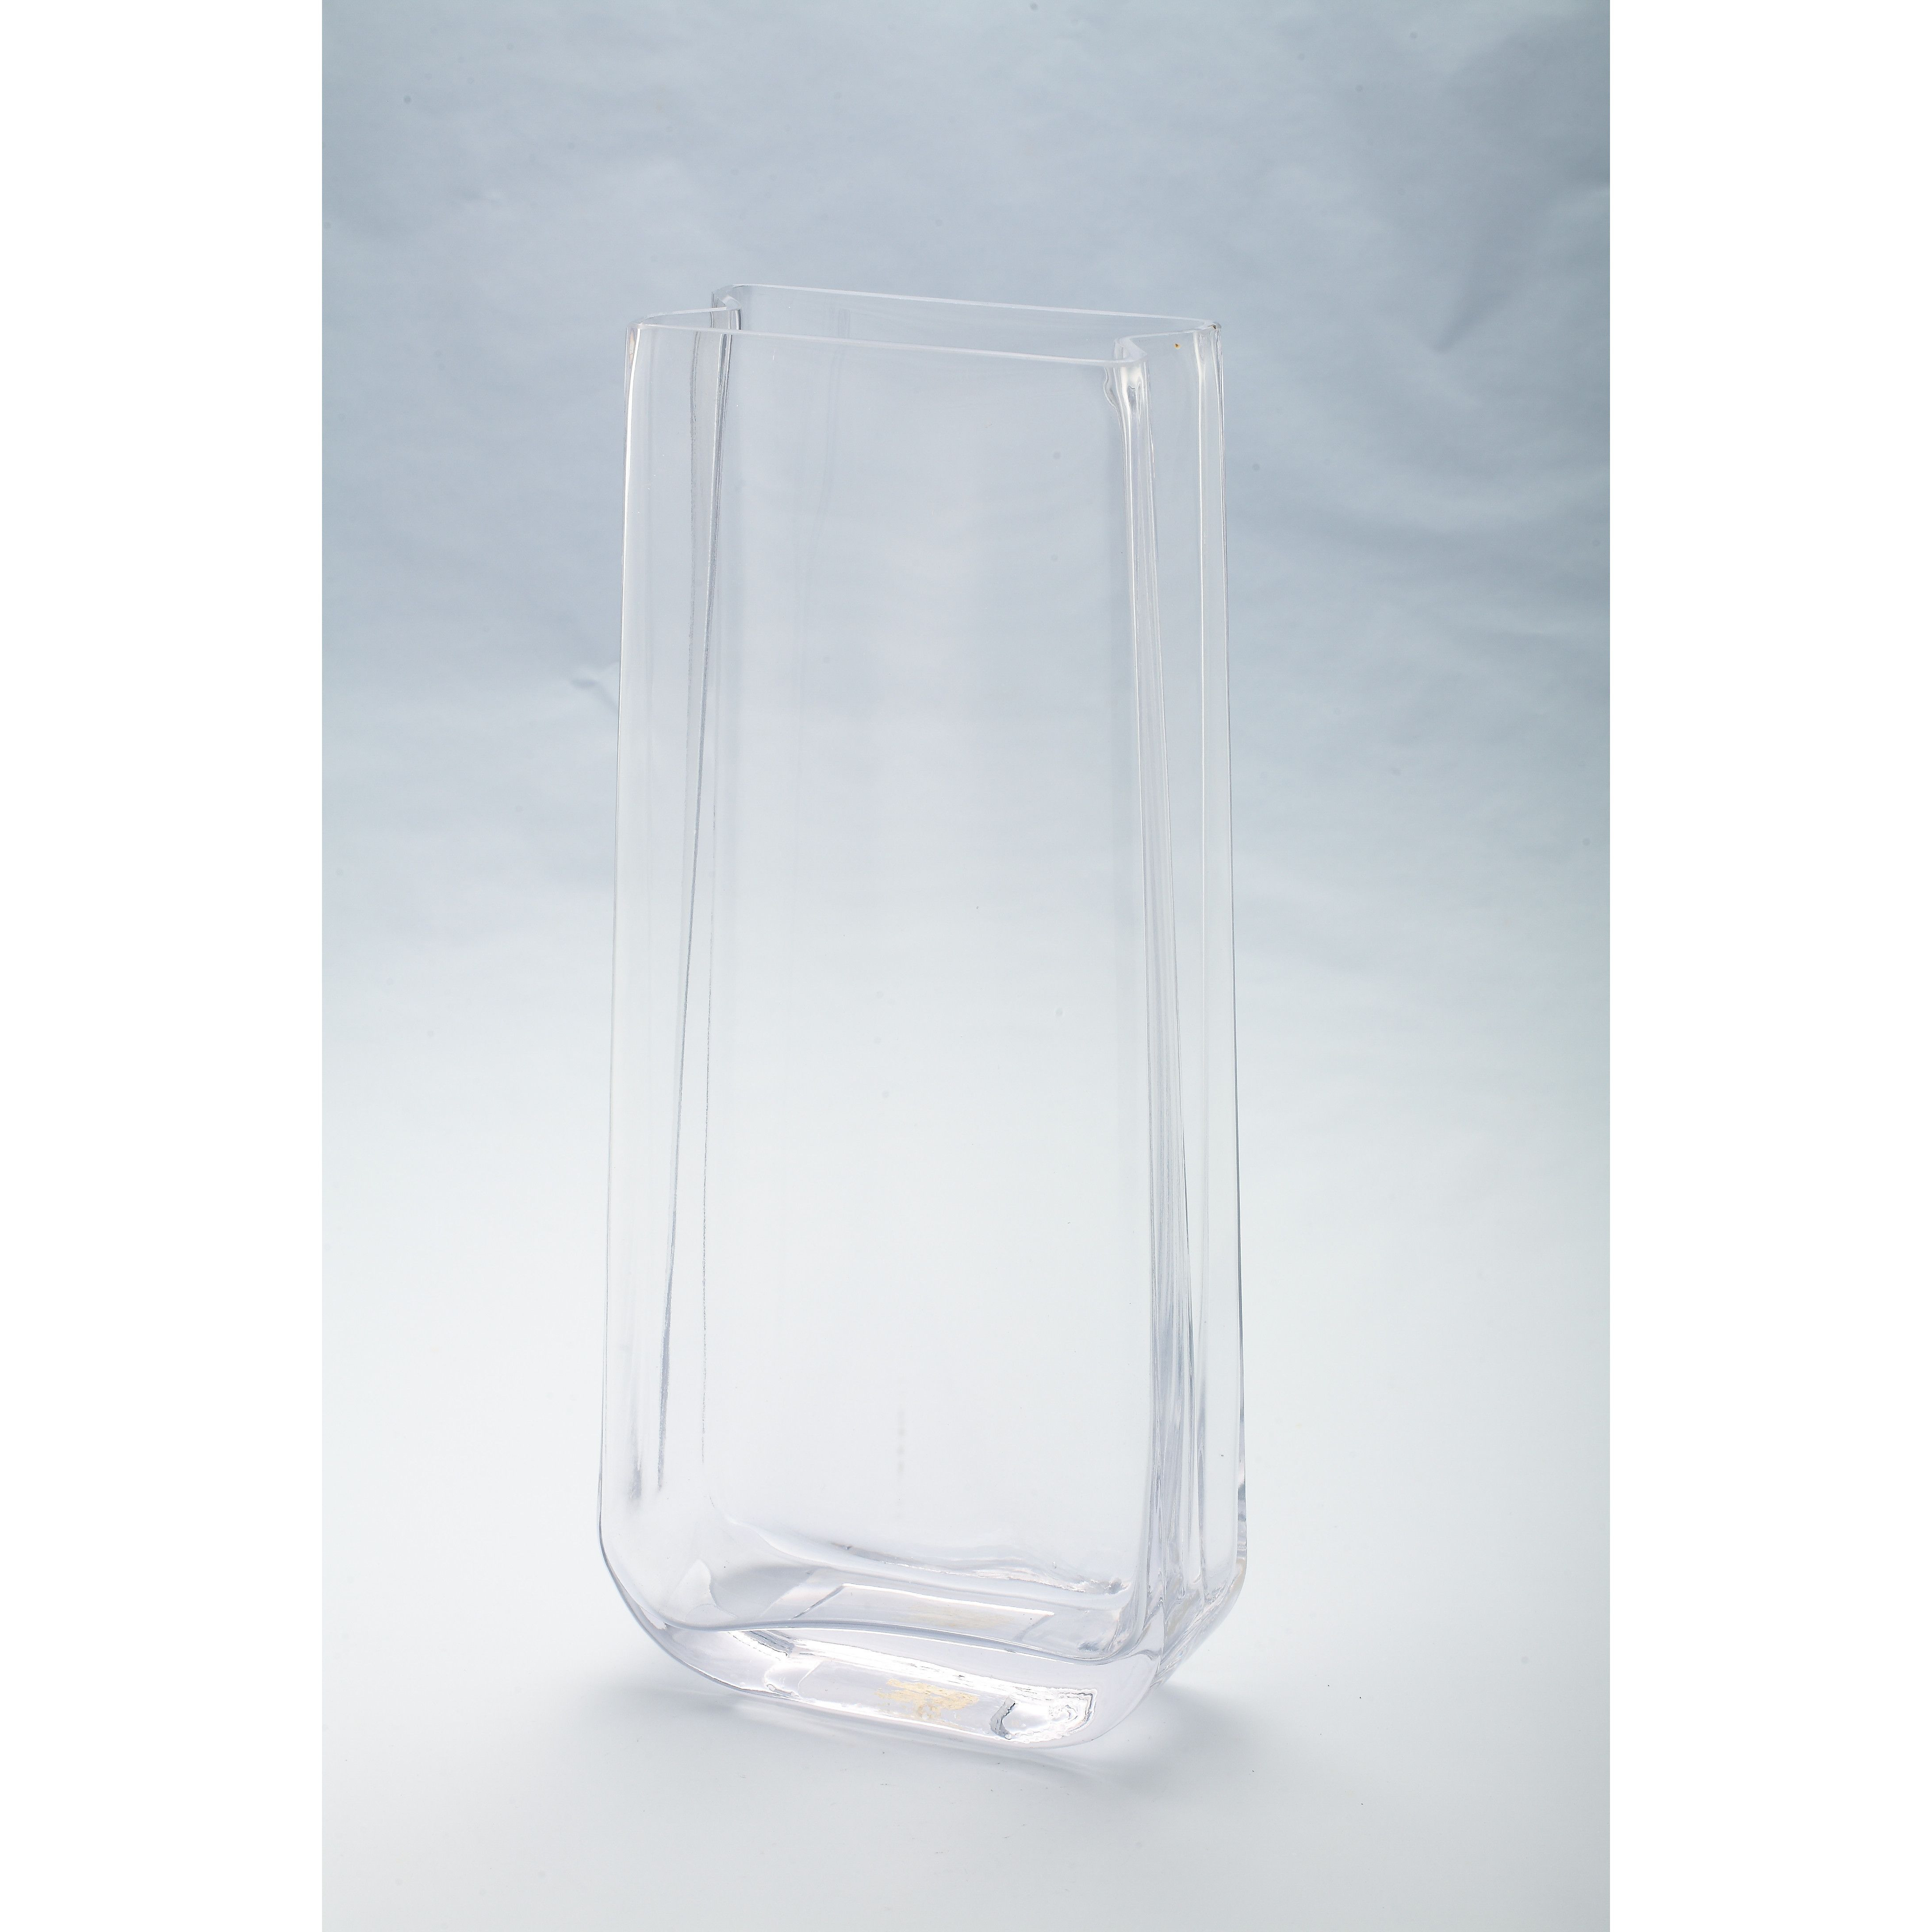 green glass cylinder vase of rent glass vases image door glass luxury 2 h vases vase rental nyc i in gallery of rent glass vases